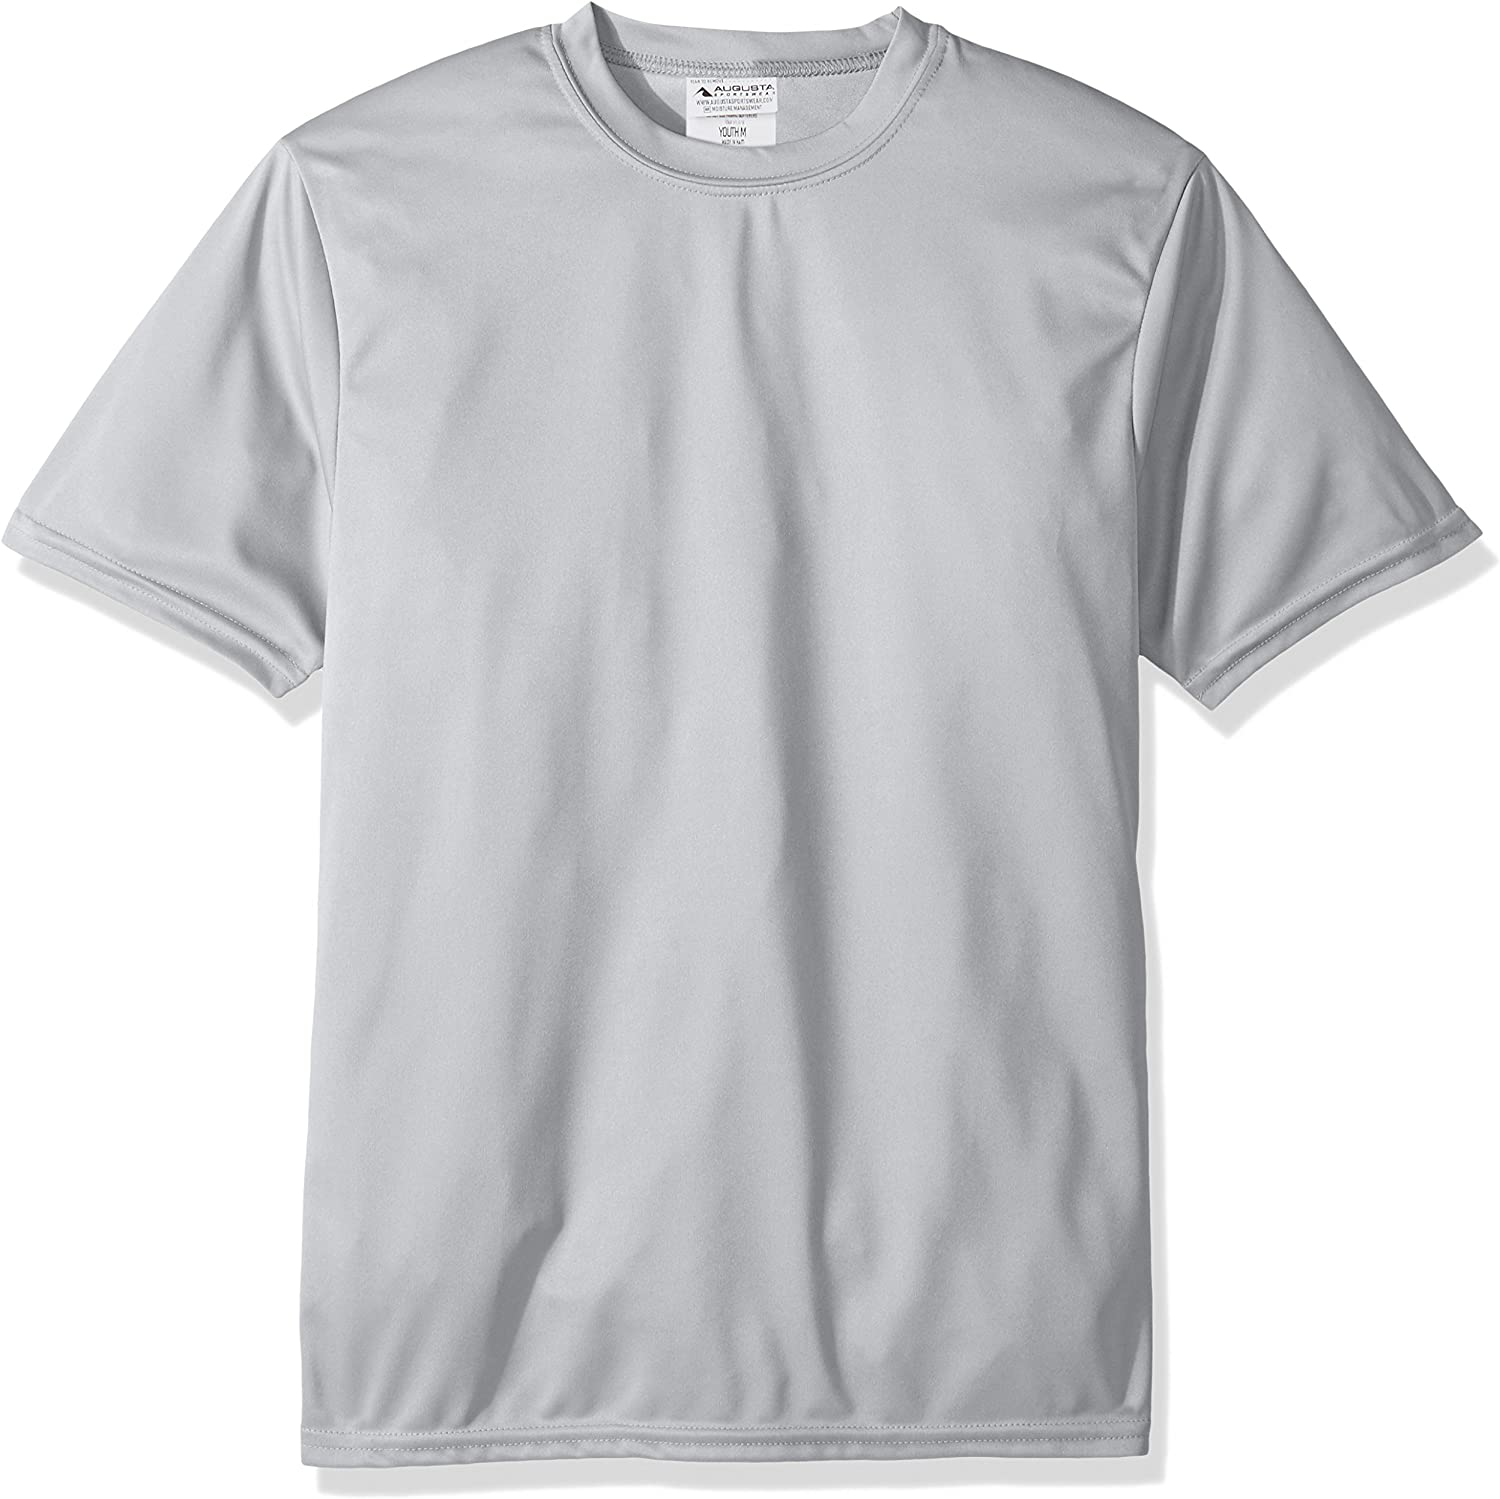 Augusta Sportswear Boys Wicking T-Shirt